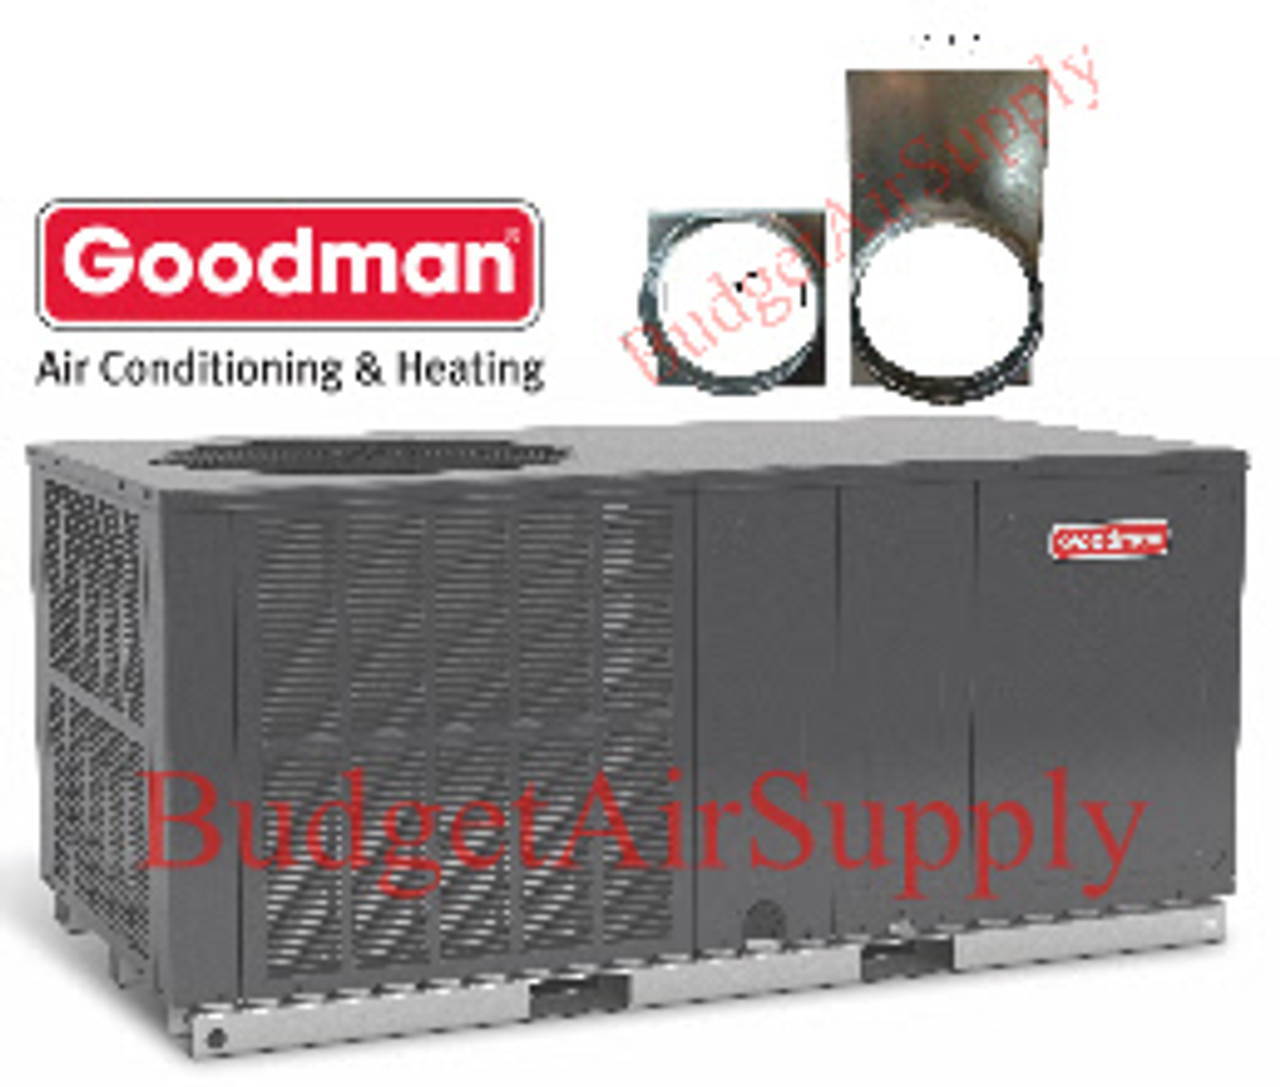 hight resolution of goodman 3 1 2 3 5 ton 14 seer gph1442h41 packaged heat pump a c free adapters budget air supply